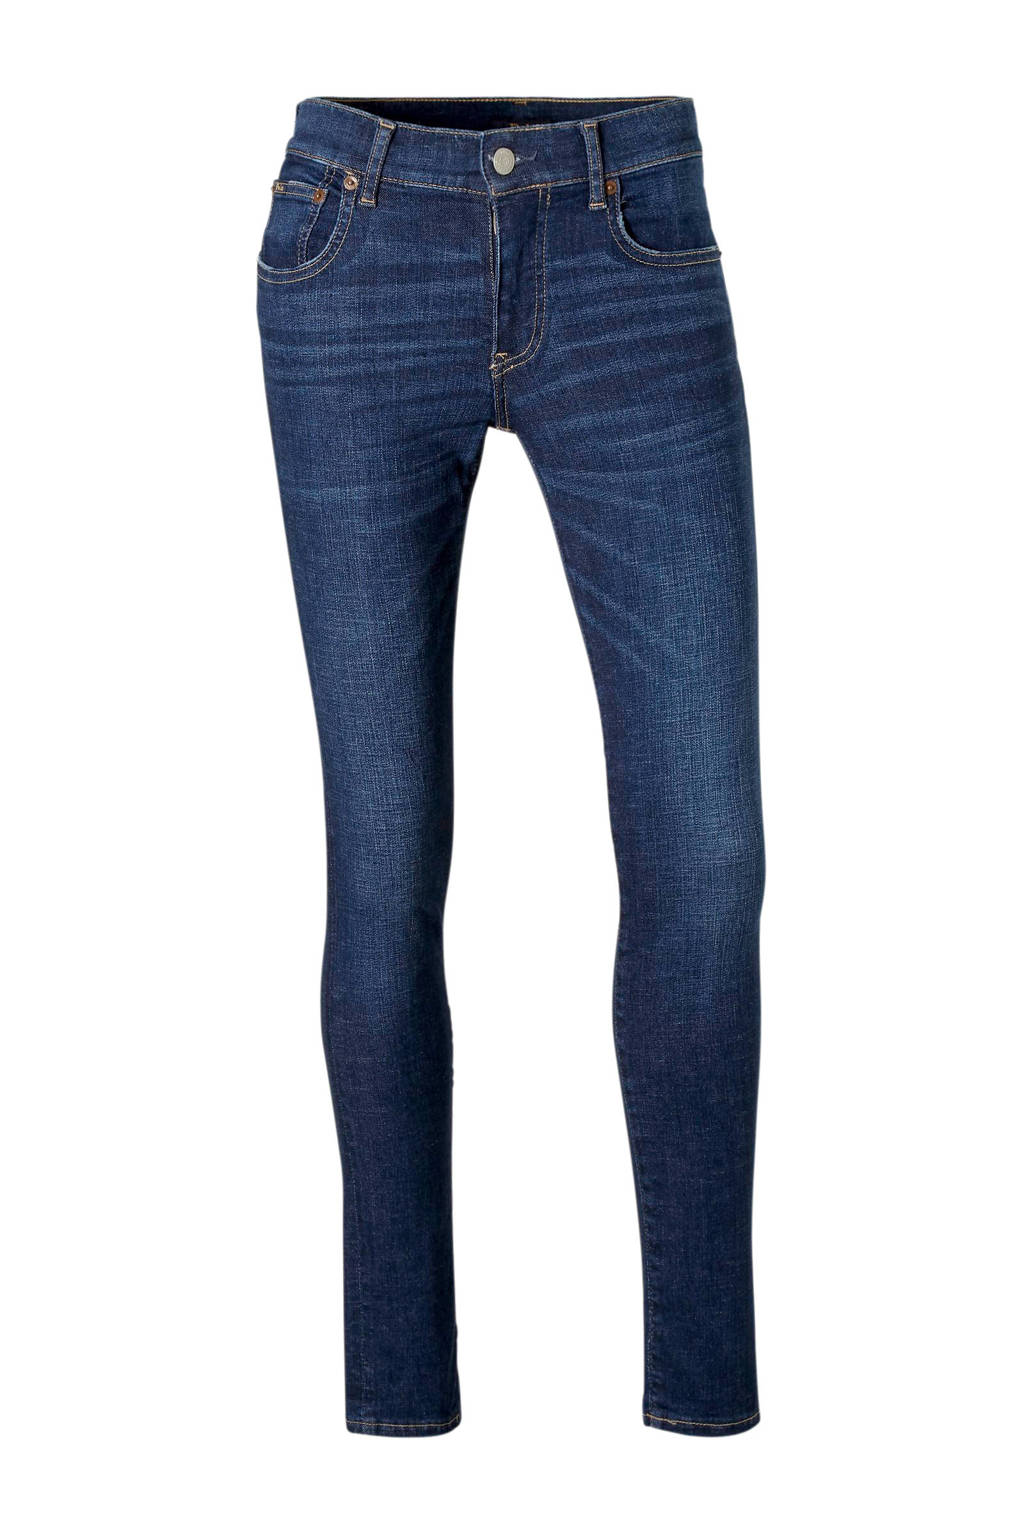 POLO Ralph Lauren skinny fit jeans, Donkerblauw